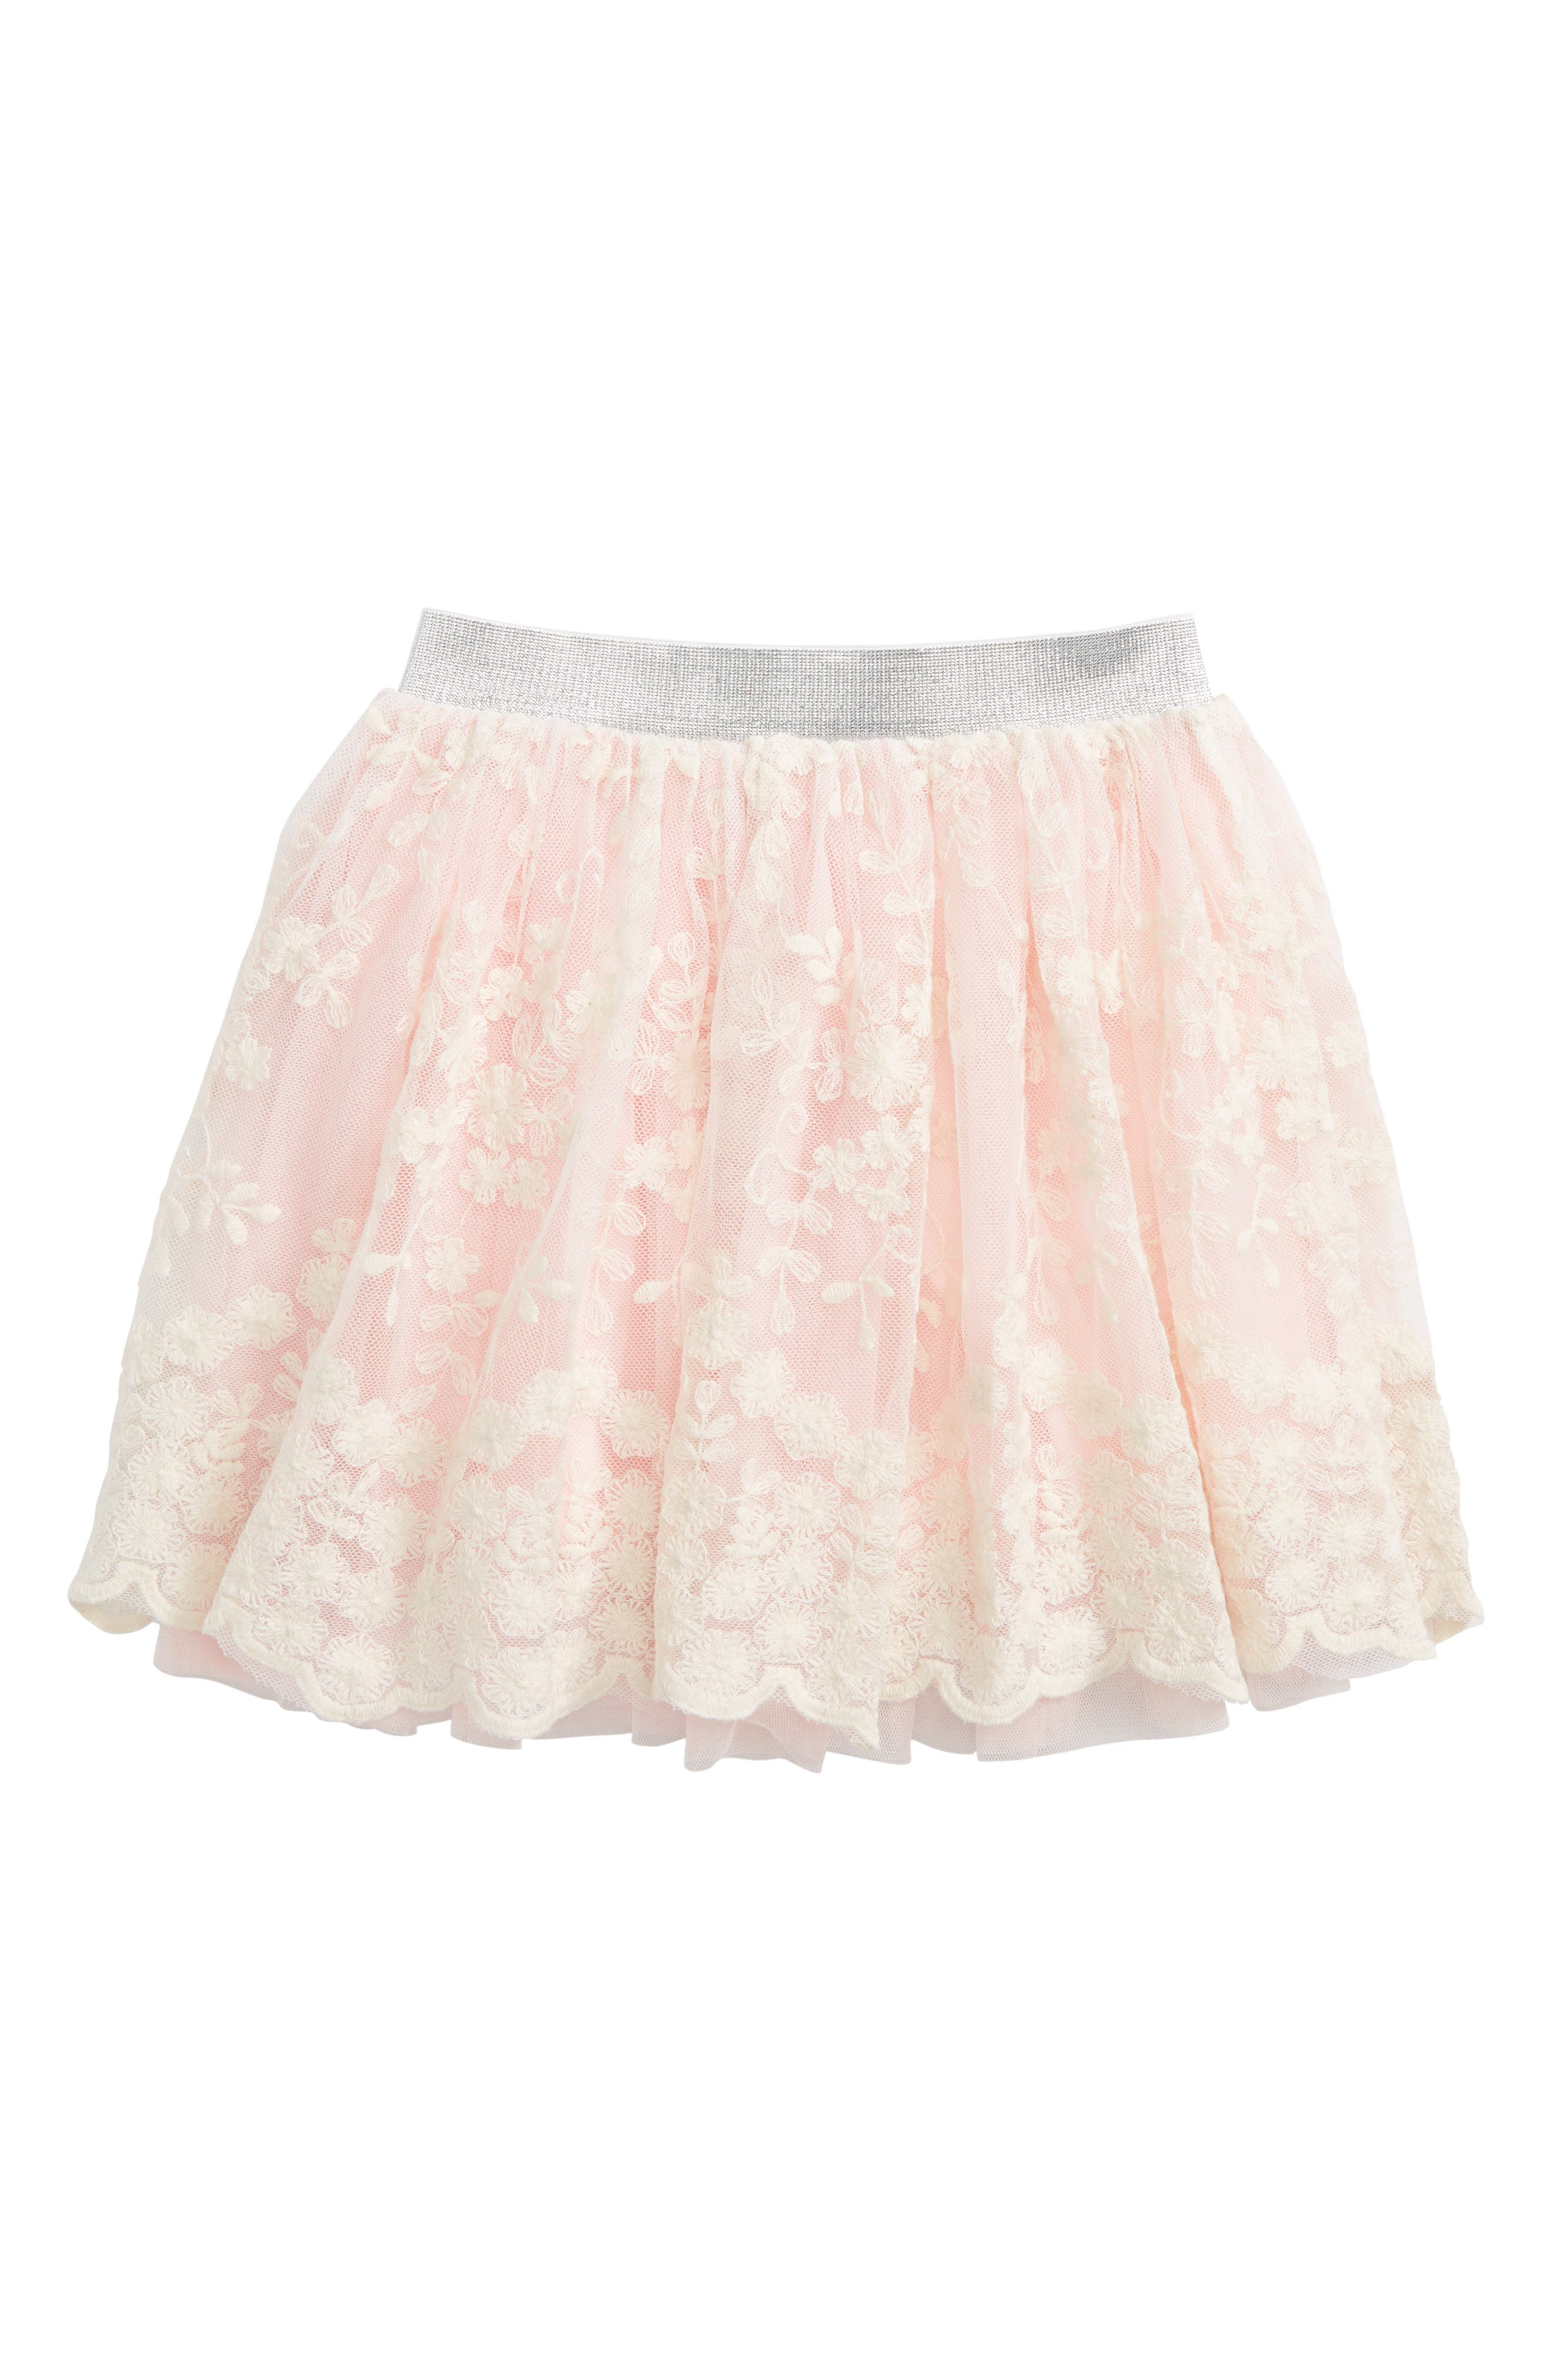 Floral Lace Skirt,                         Main,                         color, 900